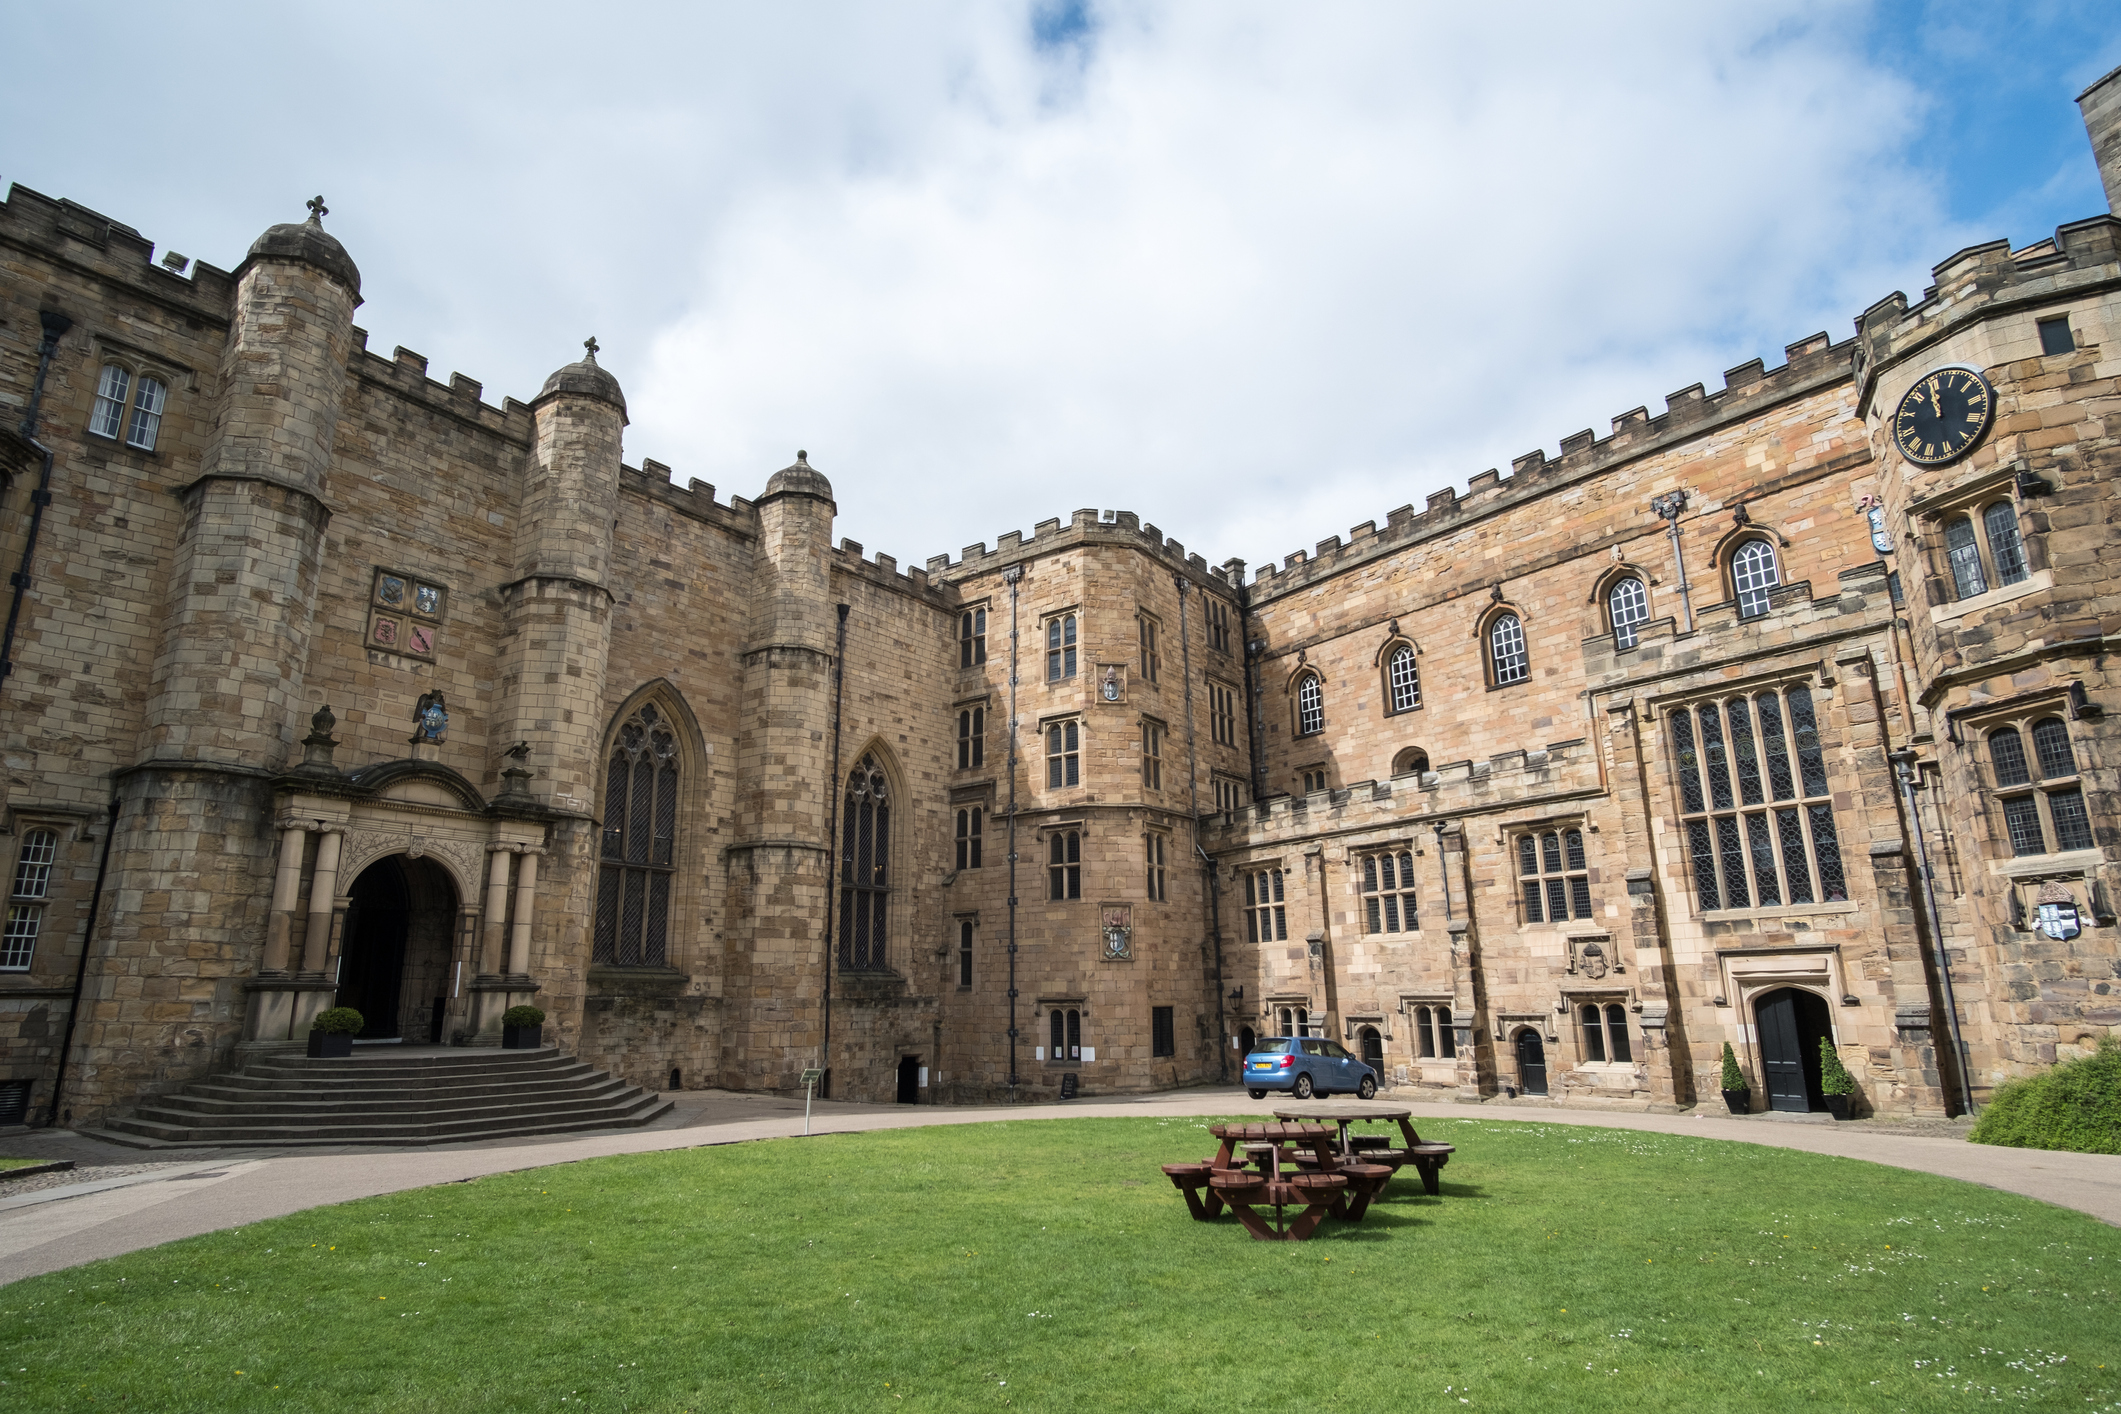 Durham: Durham Castle, a Norman castle in the city of Durham, England